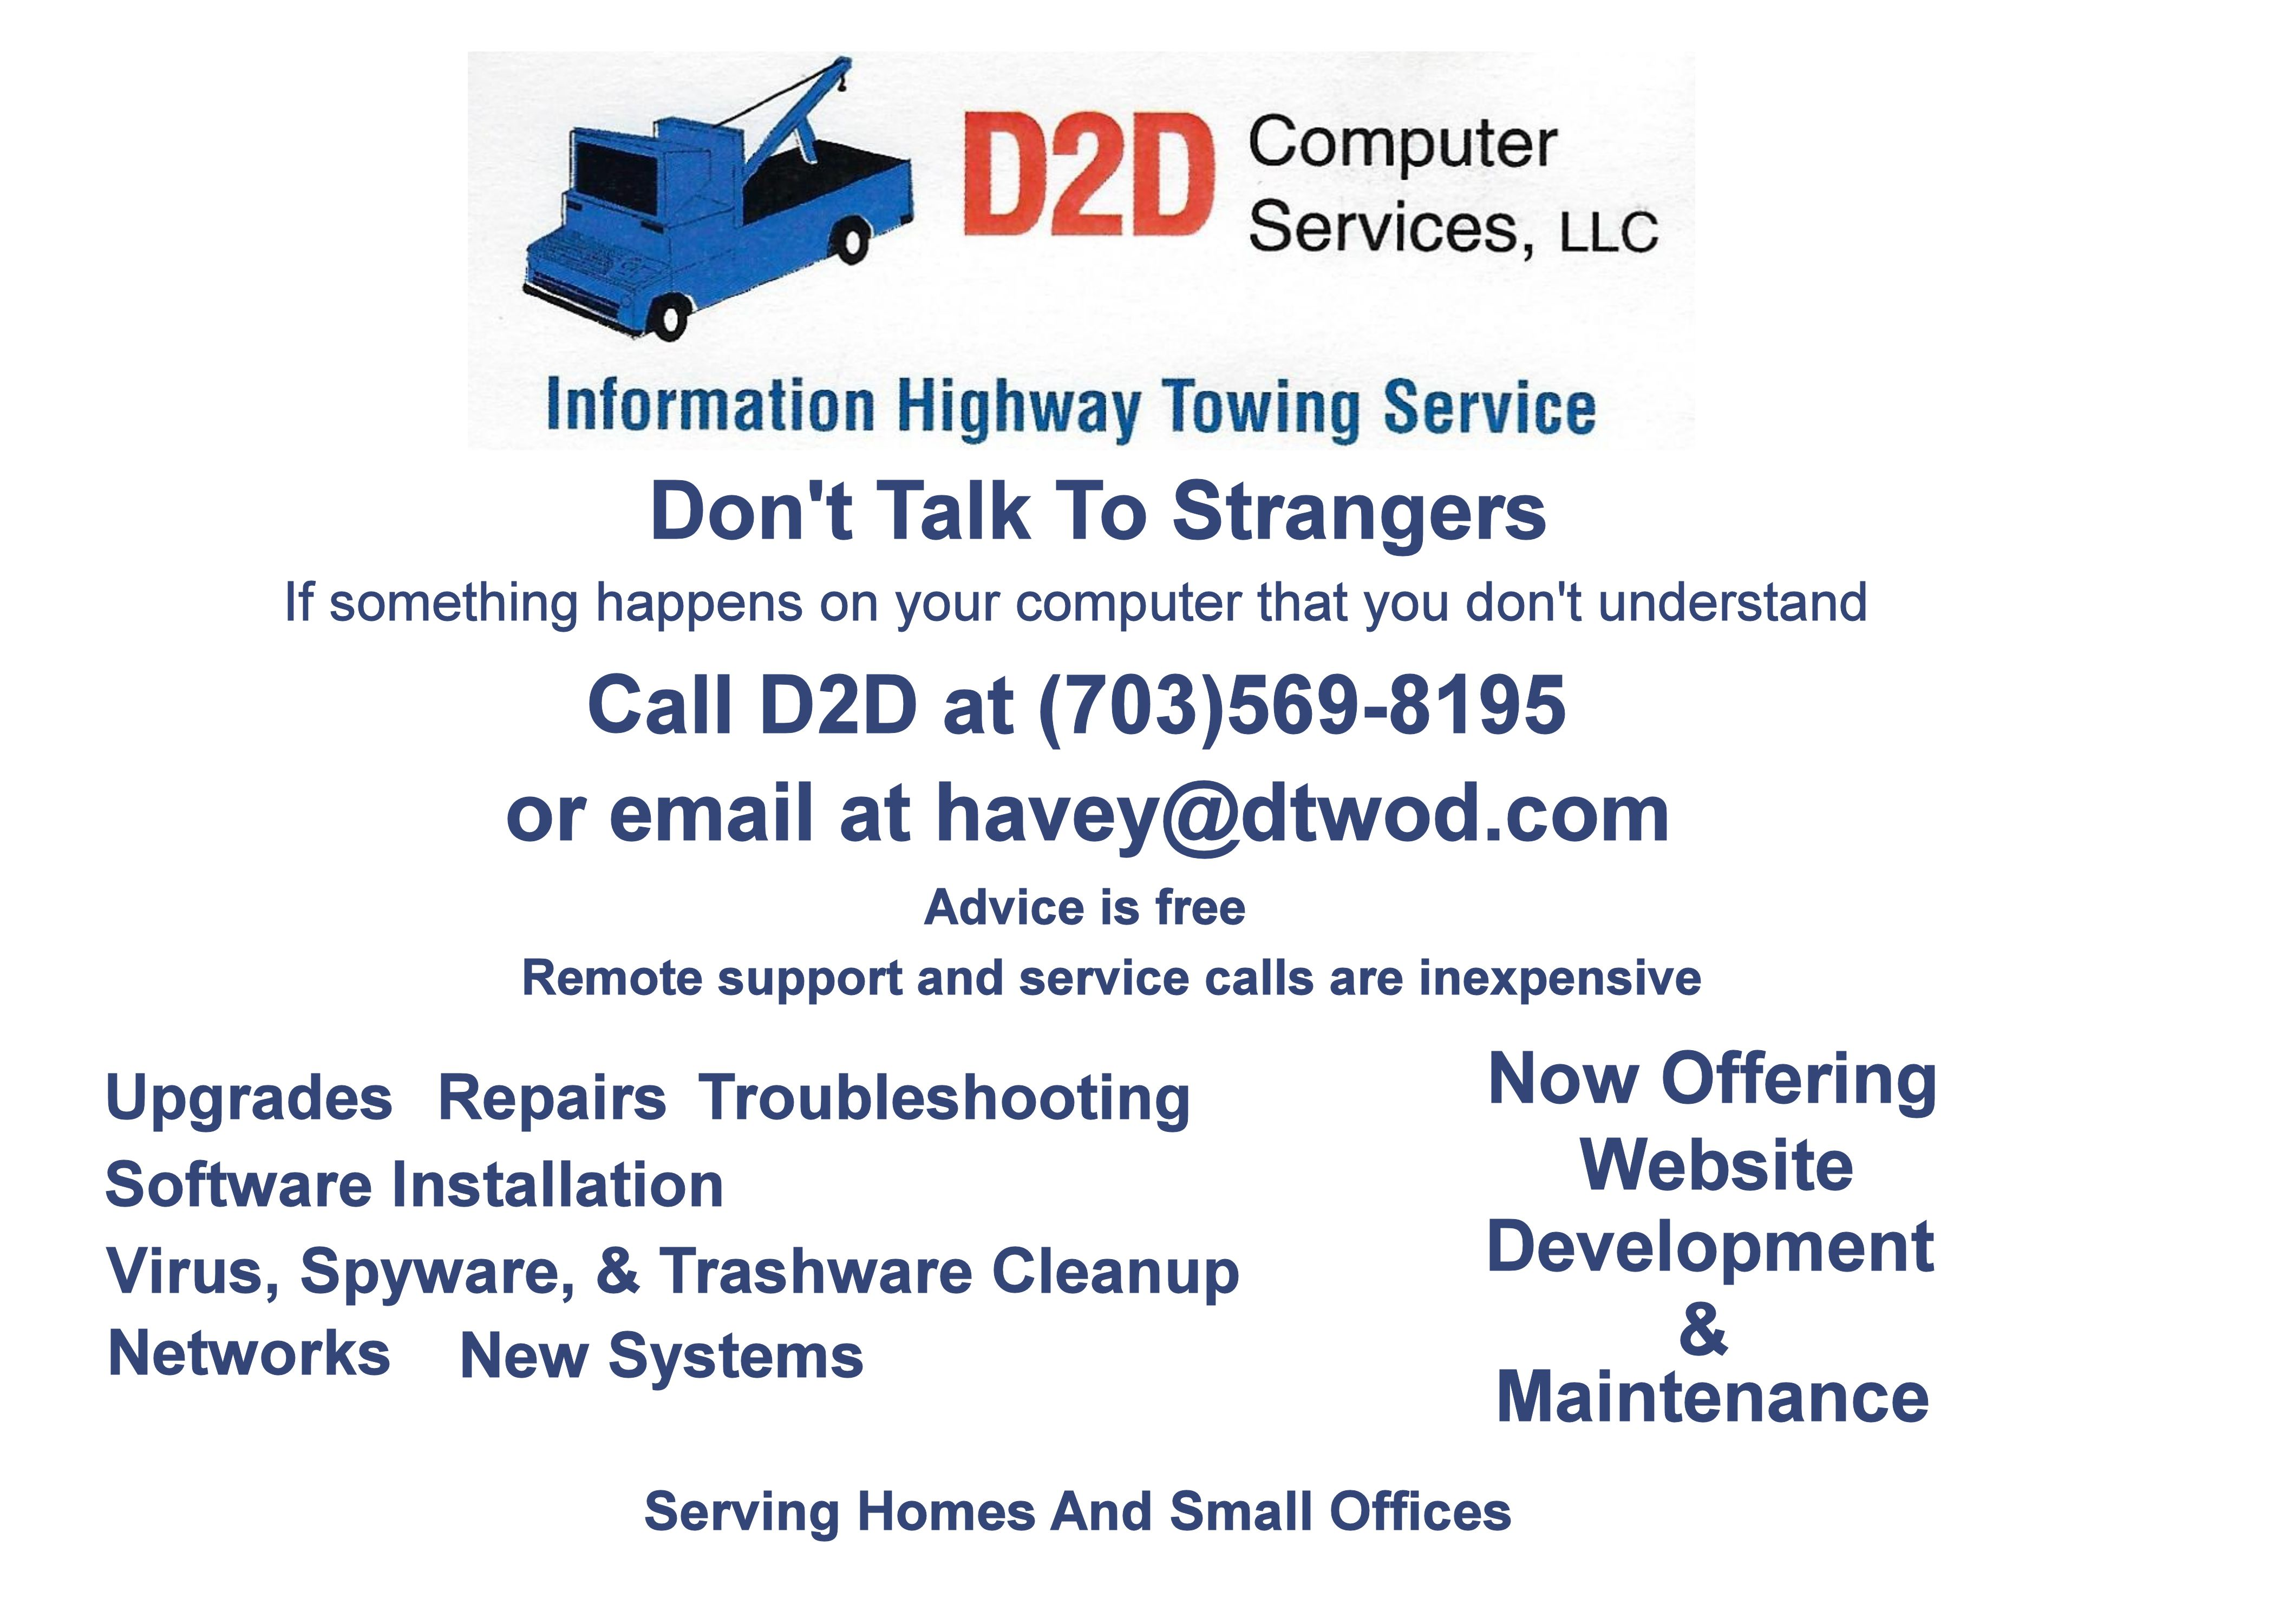 D2D Computer Services offers troubleshooting, repair, virus cleanup, and website develoment and maintenance